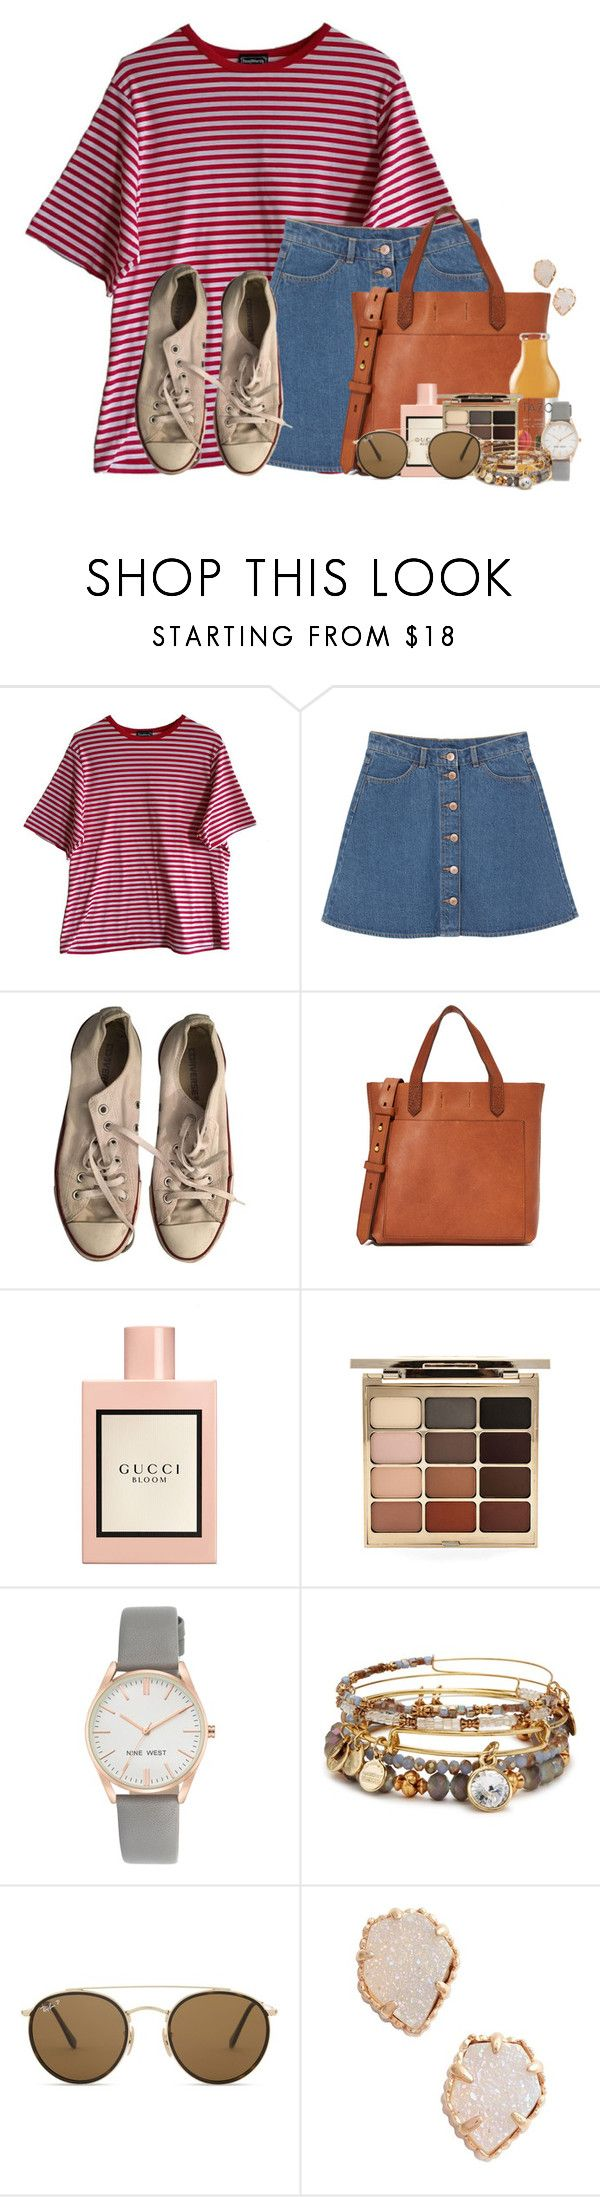 """""""Time to decorate for Christmas!"""" by victoriaann34 ❤ liked on Polyvore featuring Monki, Converse, Madewell, Gucci, Stila, Nine West, Alex and Ani, Ray-Ban and Kendra Scott"""